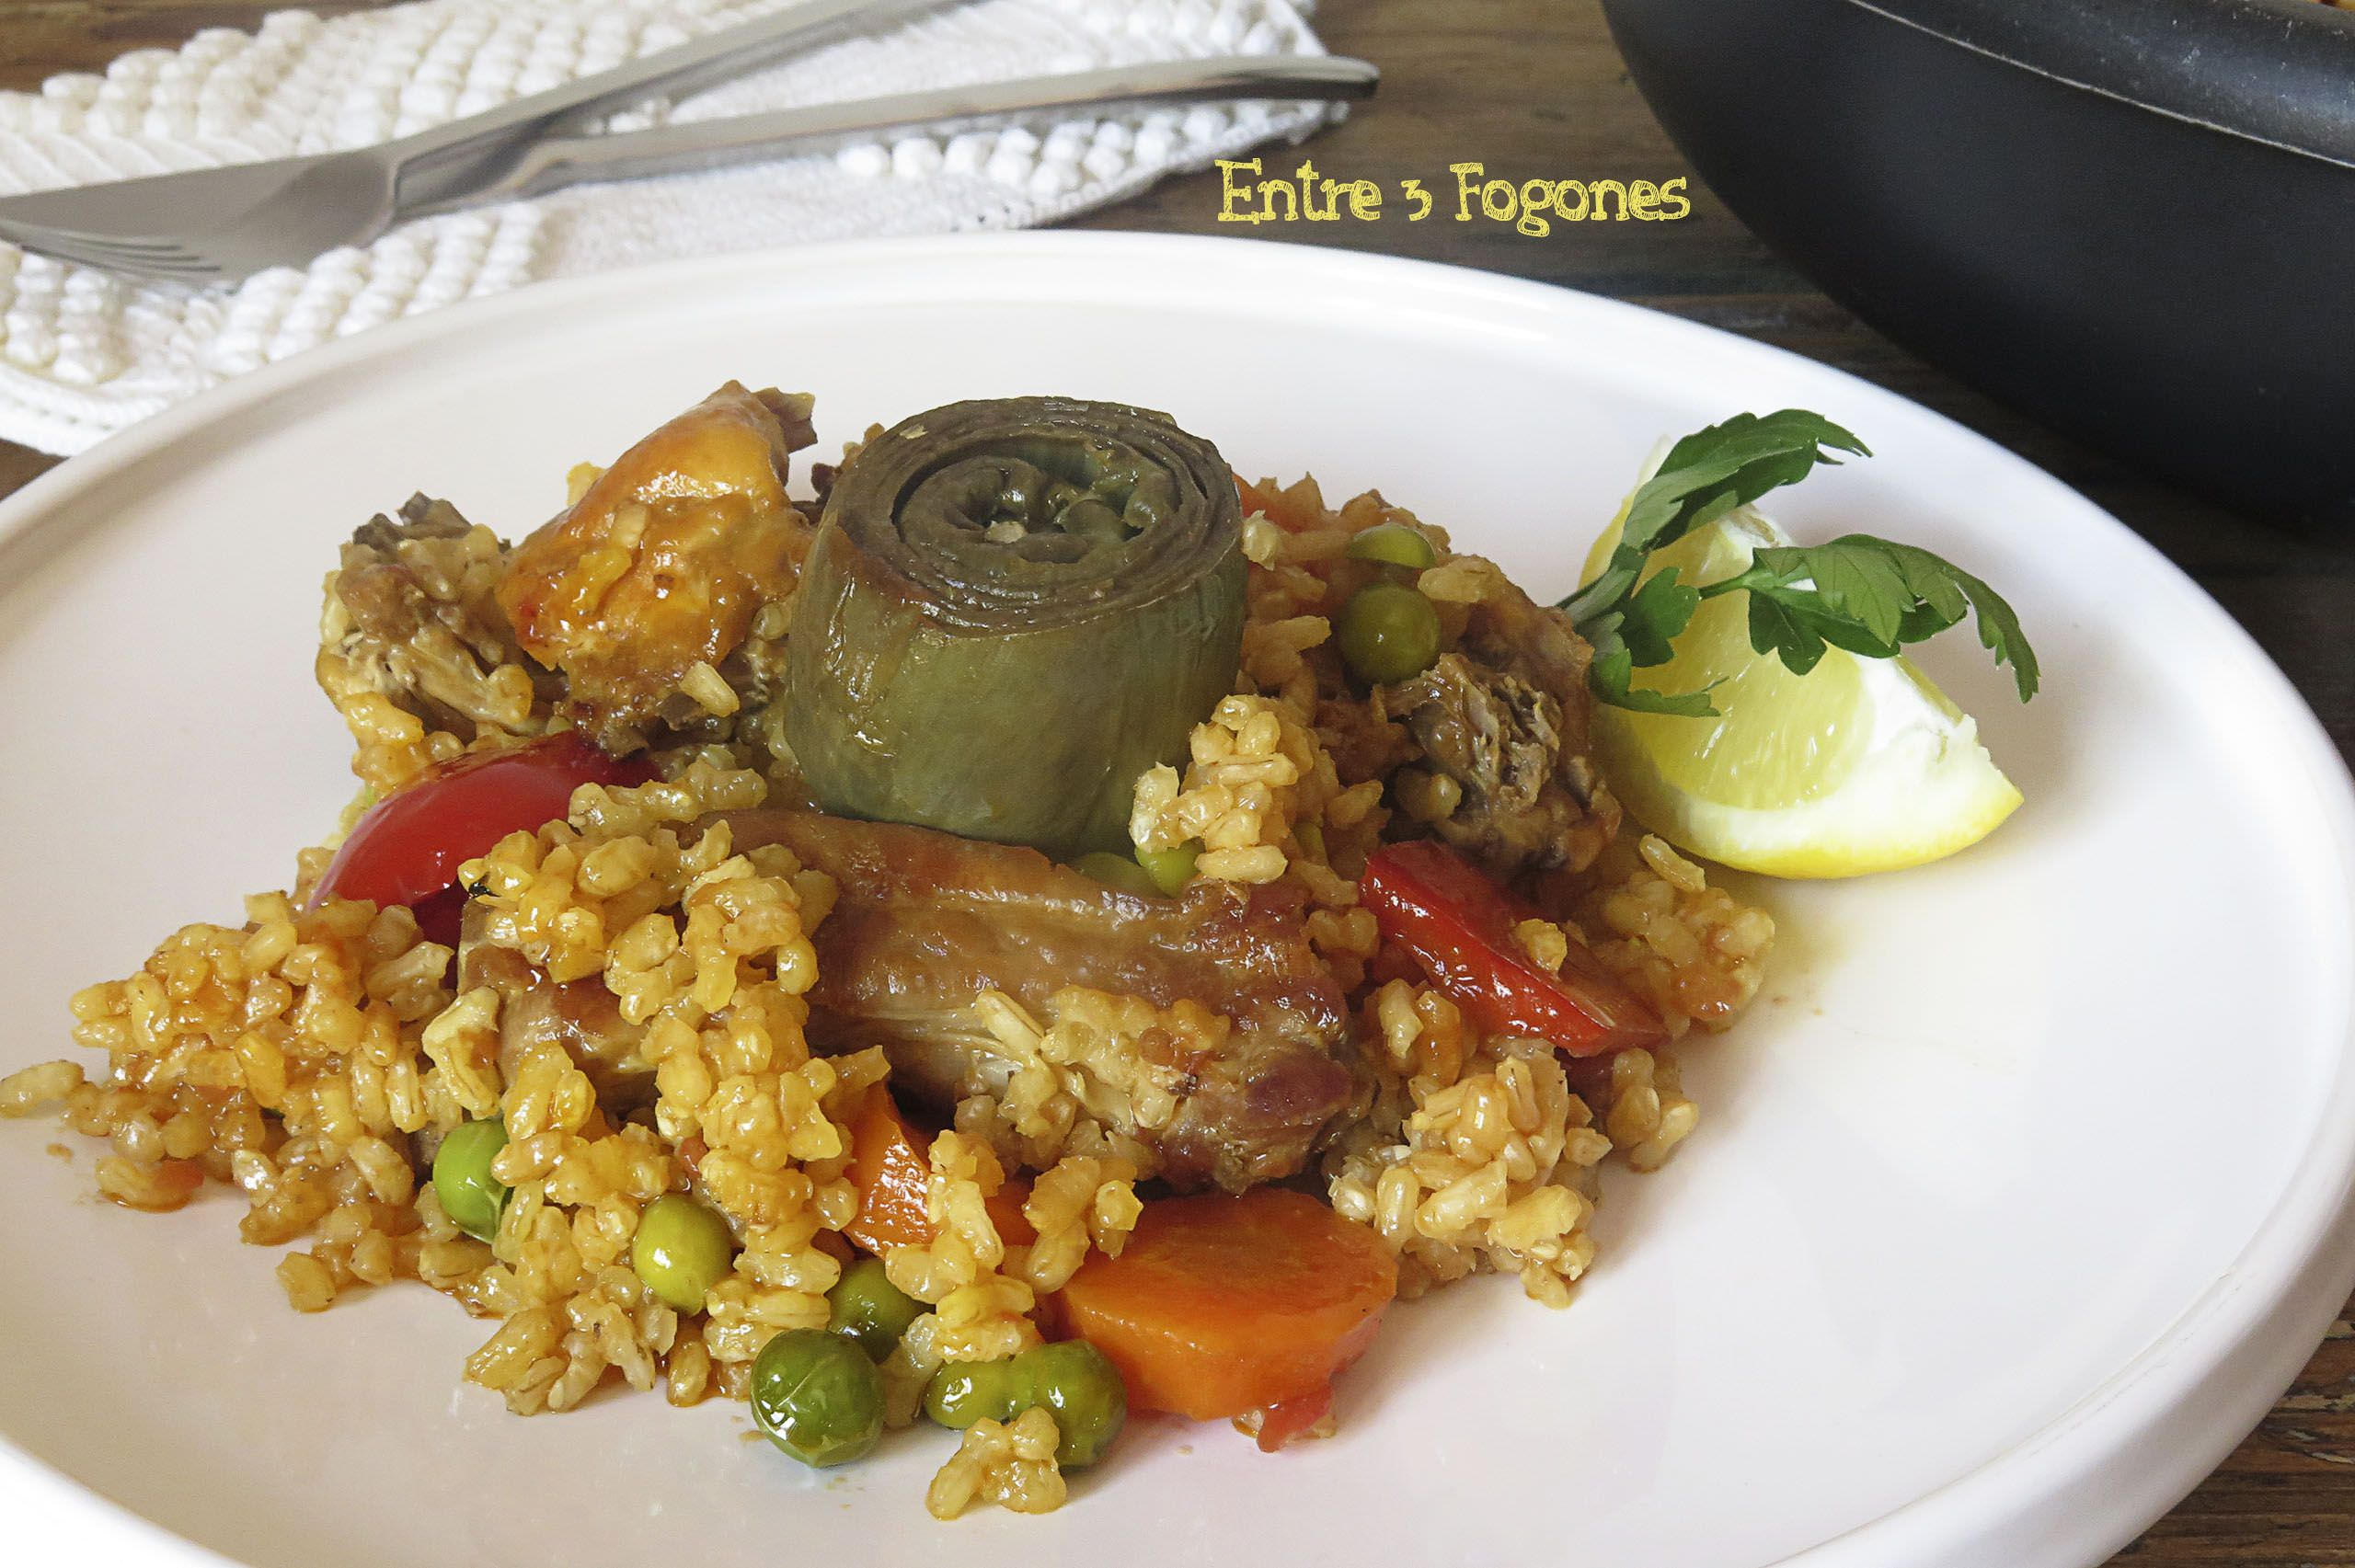 Photo of Arroz con Verduras y Costillas de Cerdo